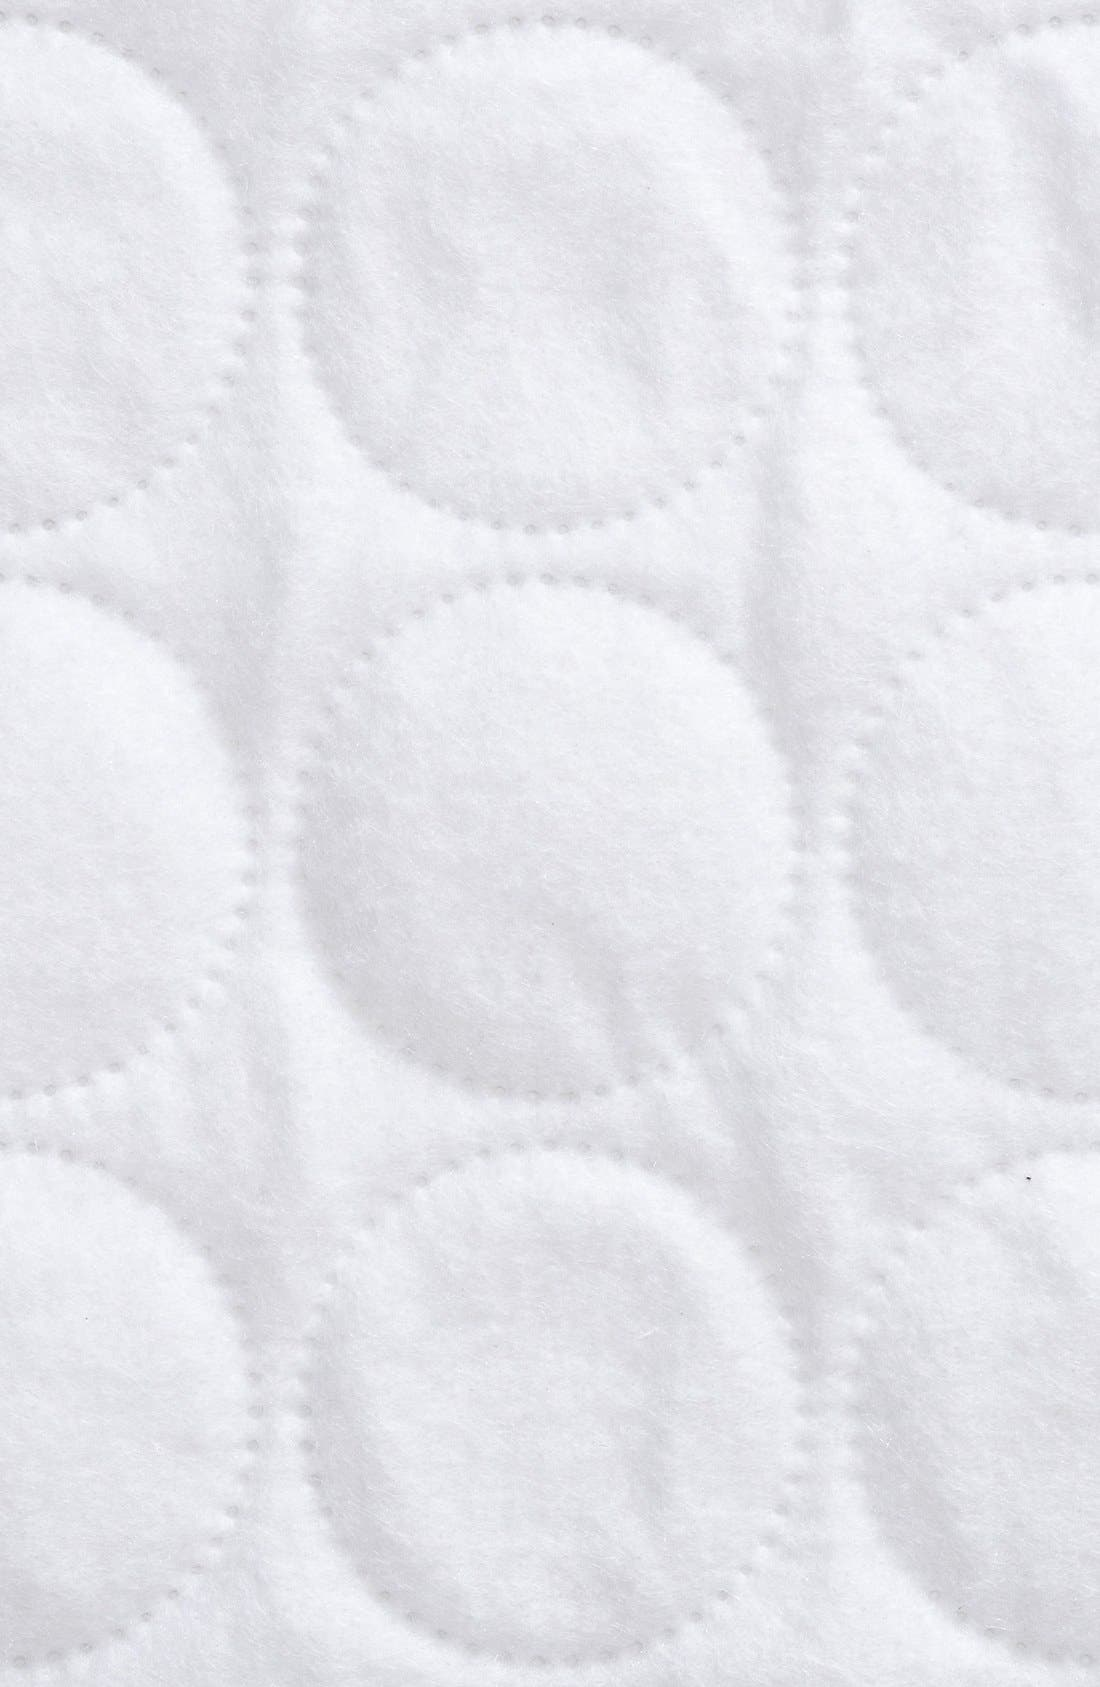 Waterproof Mattress Pad for Halo<sup>®</sup> Bassinest<sup>™</sup> Swivel Sleeper54625945101710510171651024035246839510171955343685102408,                             Alternate thumbnail 2, color,                             White